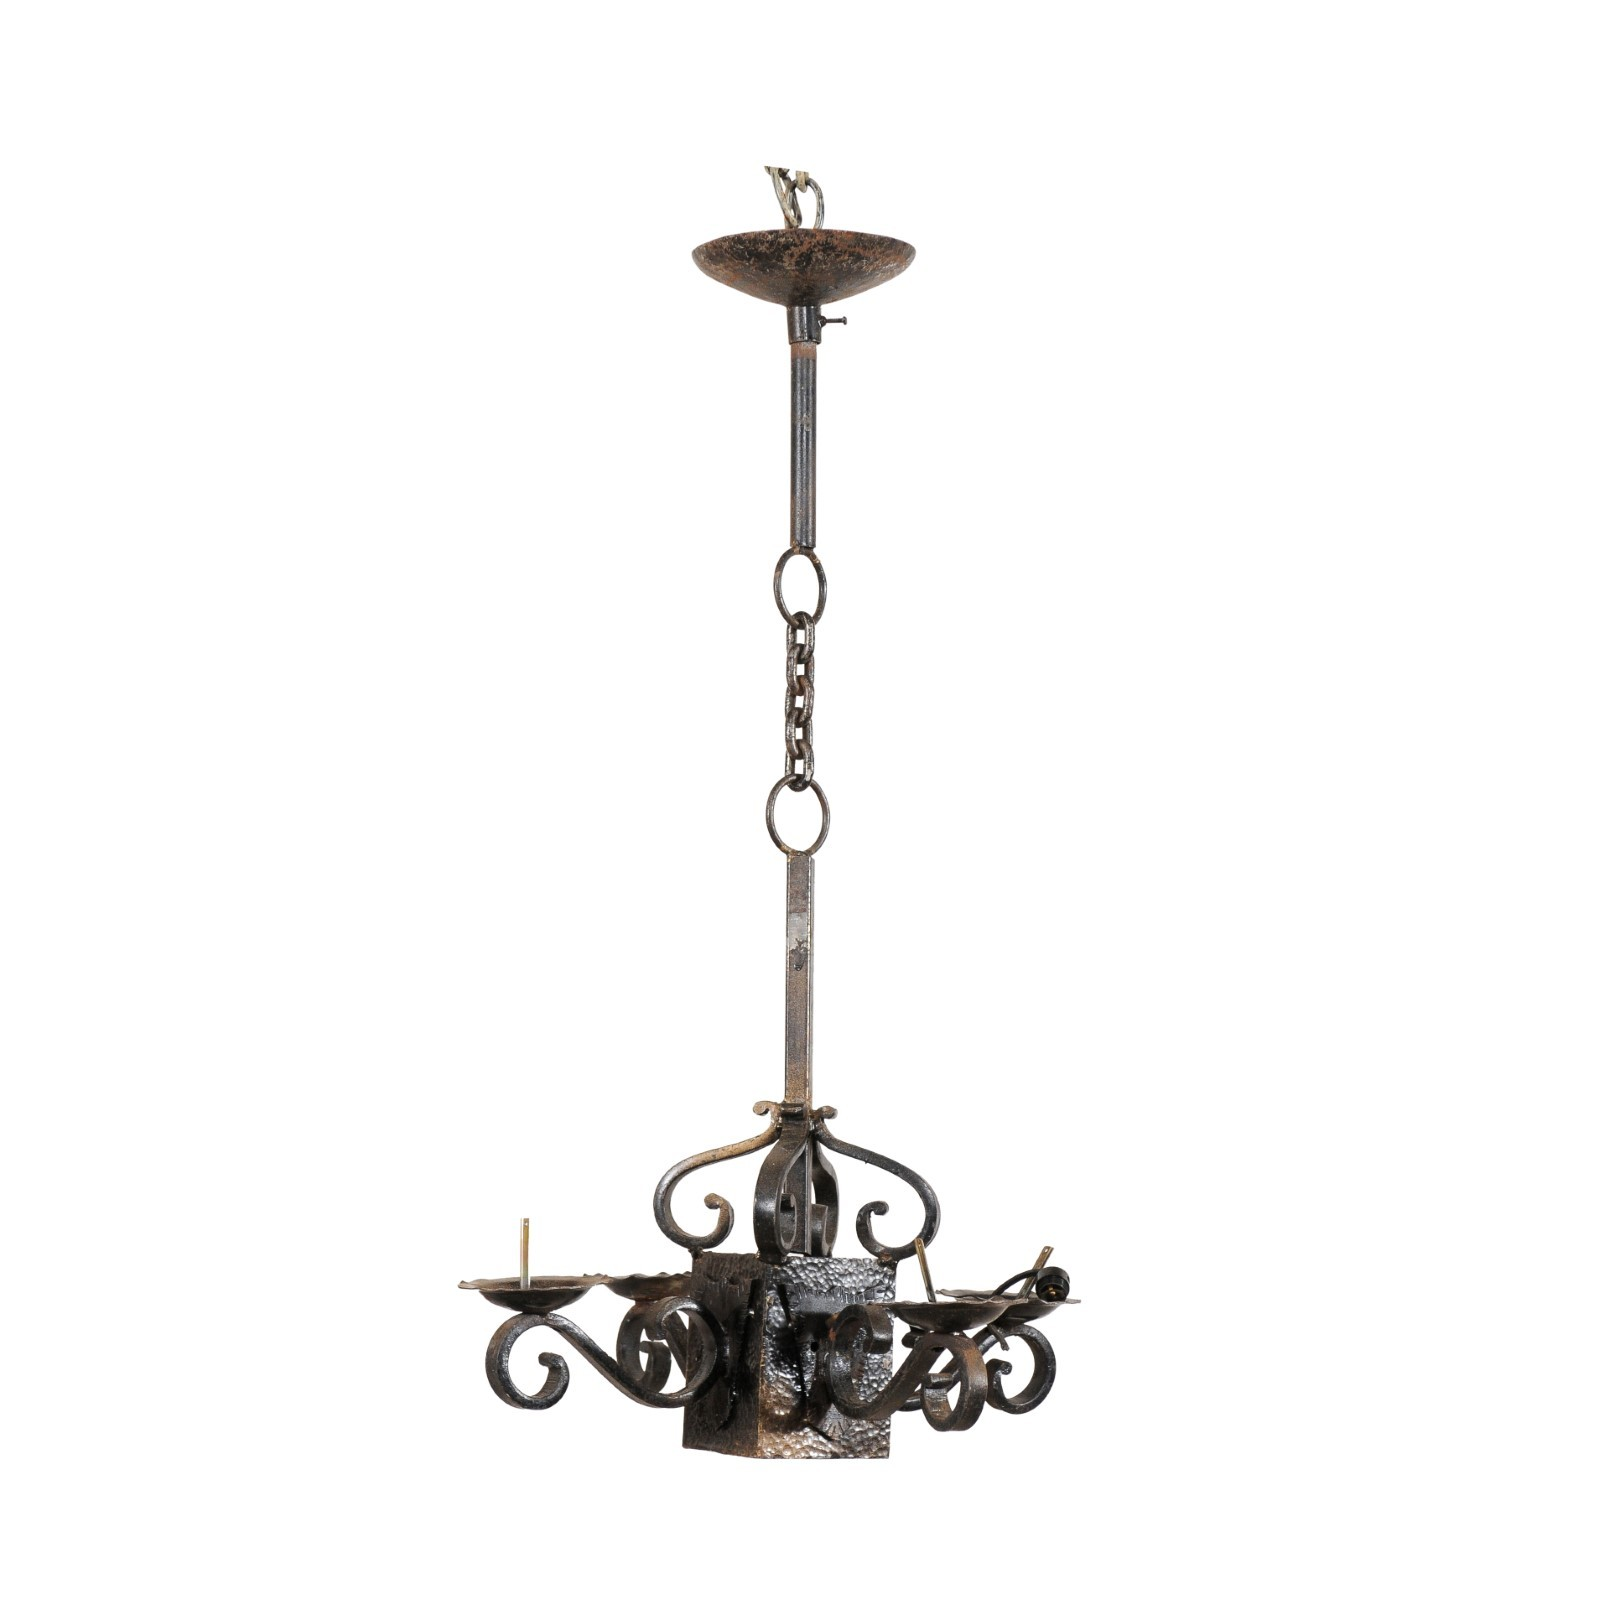 French Four-Light Suspended Chandelier